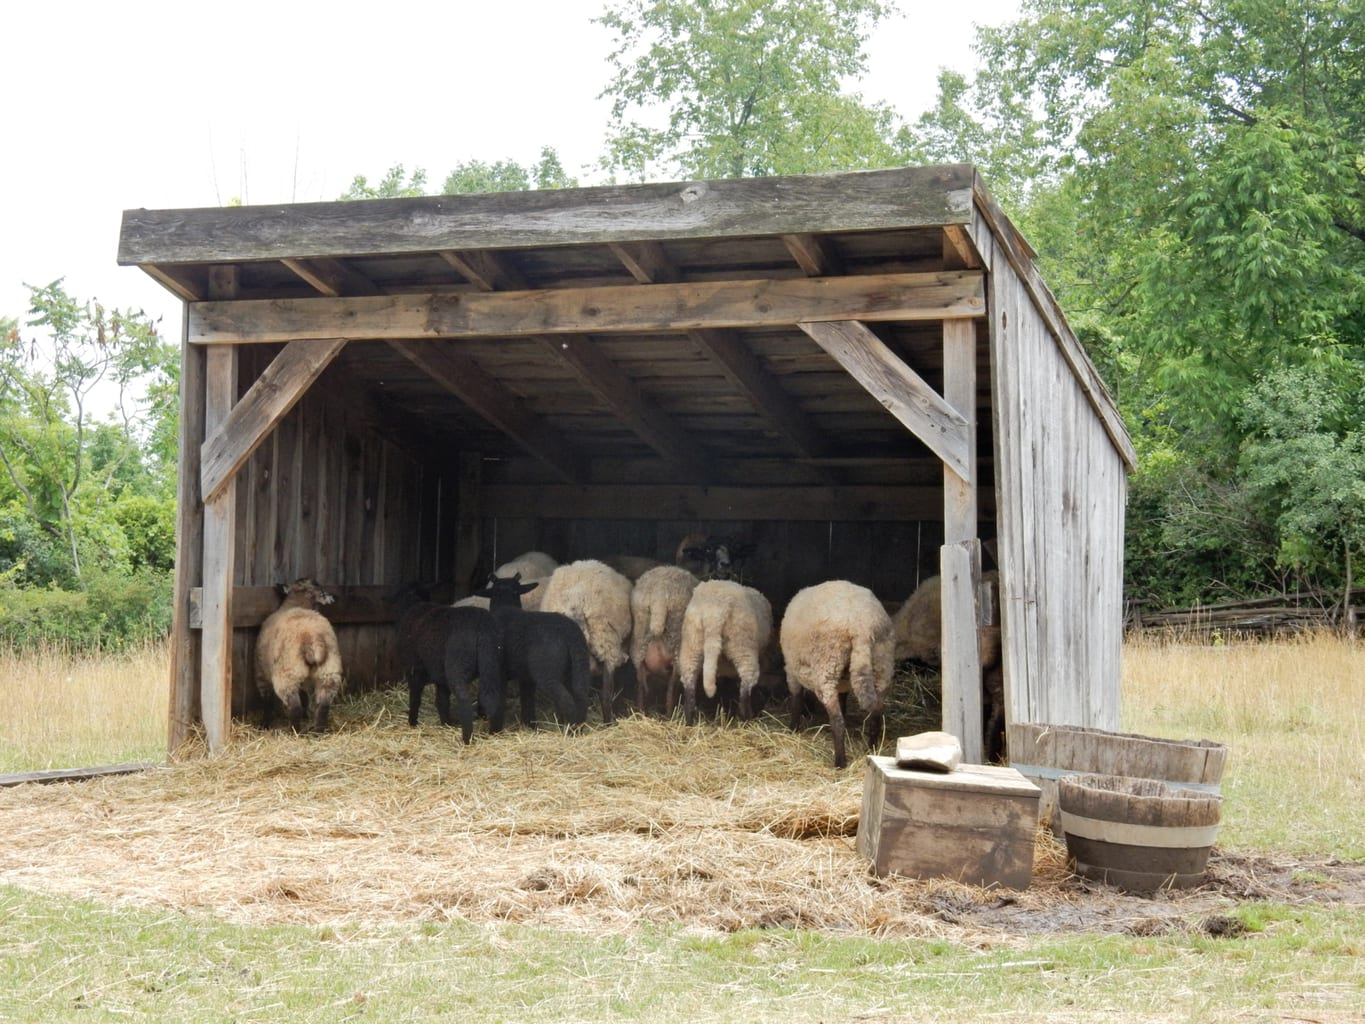 Sheep Genesee Country Village and Museum Mumford NY